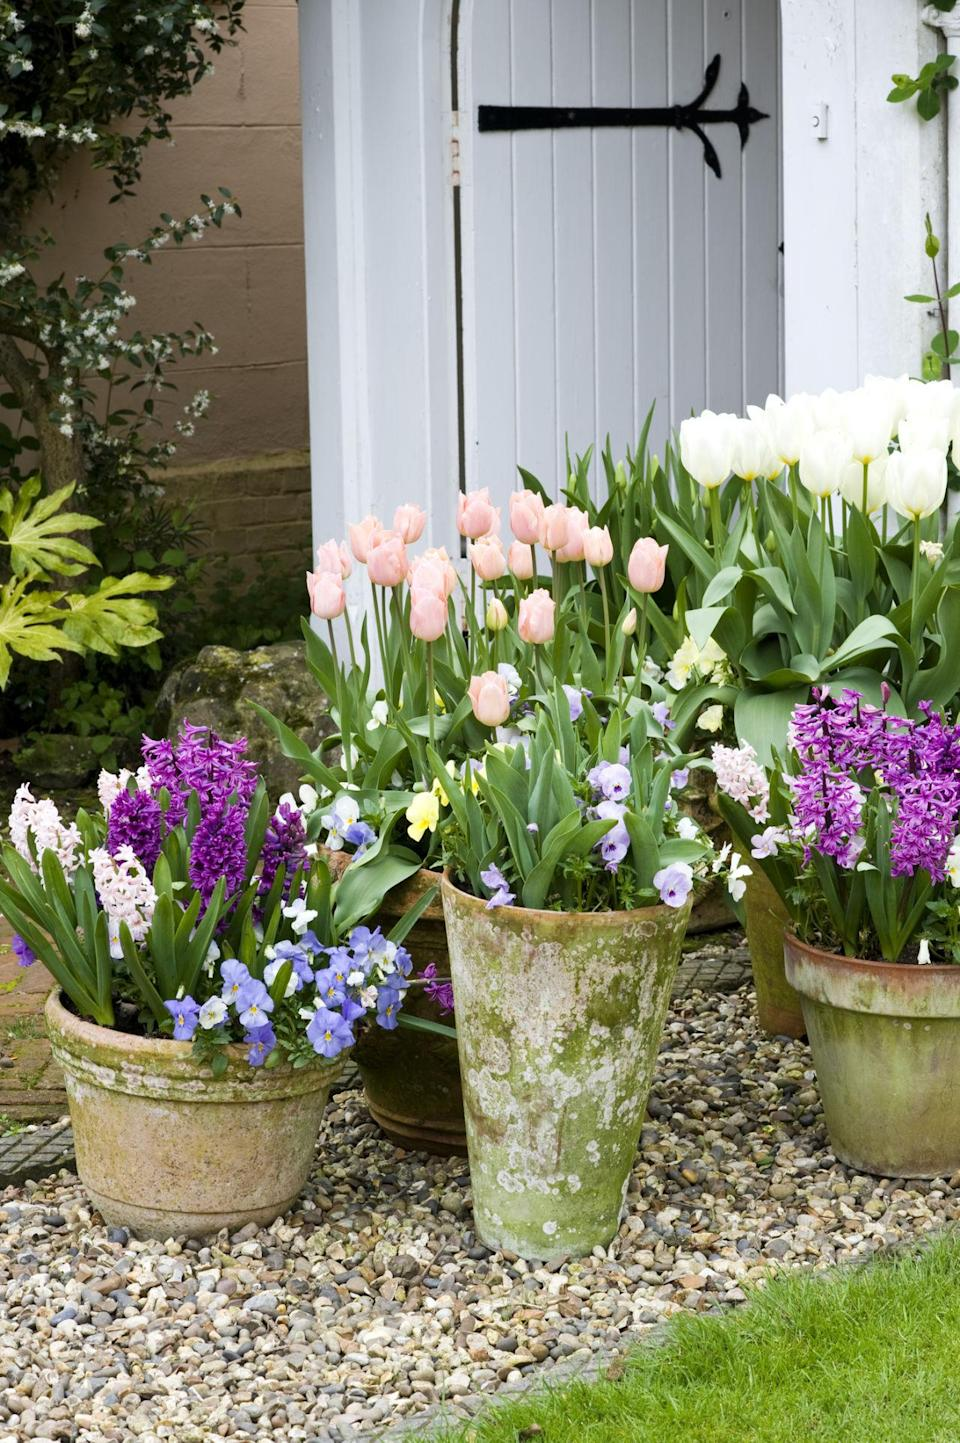 "<p>Make sure you pick a bulb for your garden's exposure (sun or shade), then dig a hole that's the proper depth, settling the bulb in place pointy-side up, since a bulb planted upside-down will not send up shoots. </p><p>""If you're unsure with some of the rounder, flatter bulbs, turn them on their side to plant, which still allows them to come up,"" advises Tankersley. Most importantly, leave the foliage in place until it withers; otherwise, the bulb can't make food for next year's bloom. Here are a few to try in your garden...<br></p>"